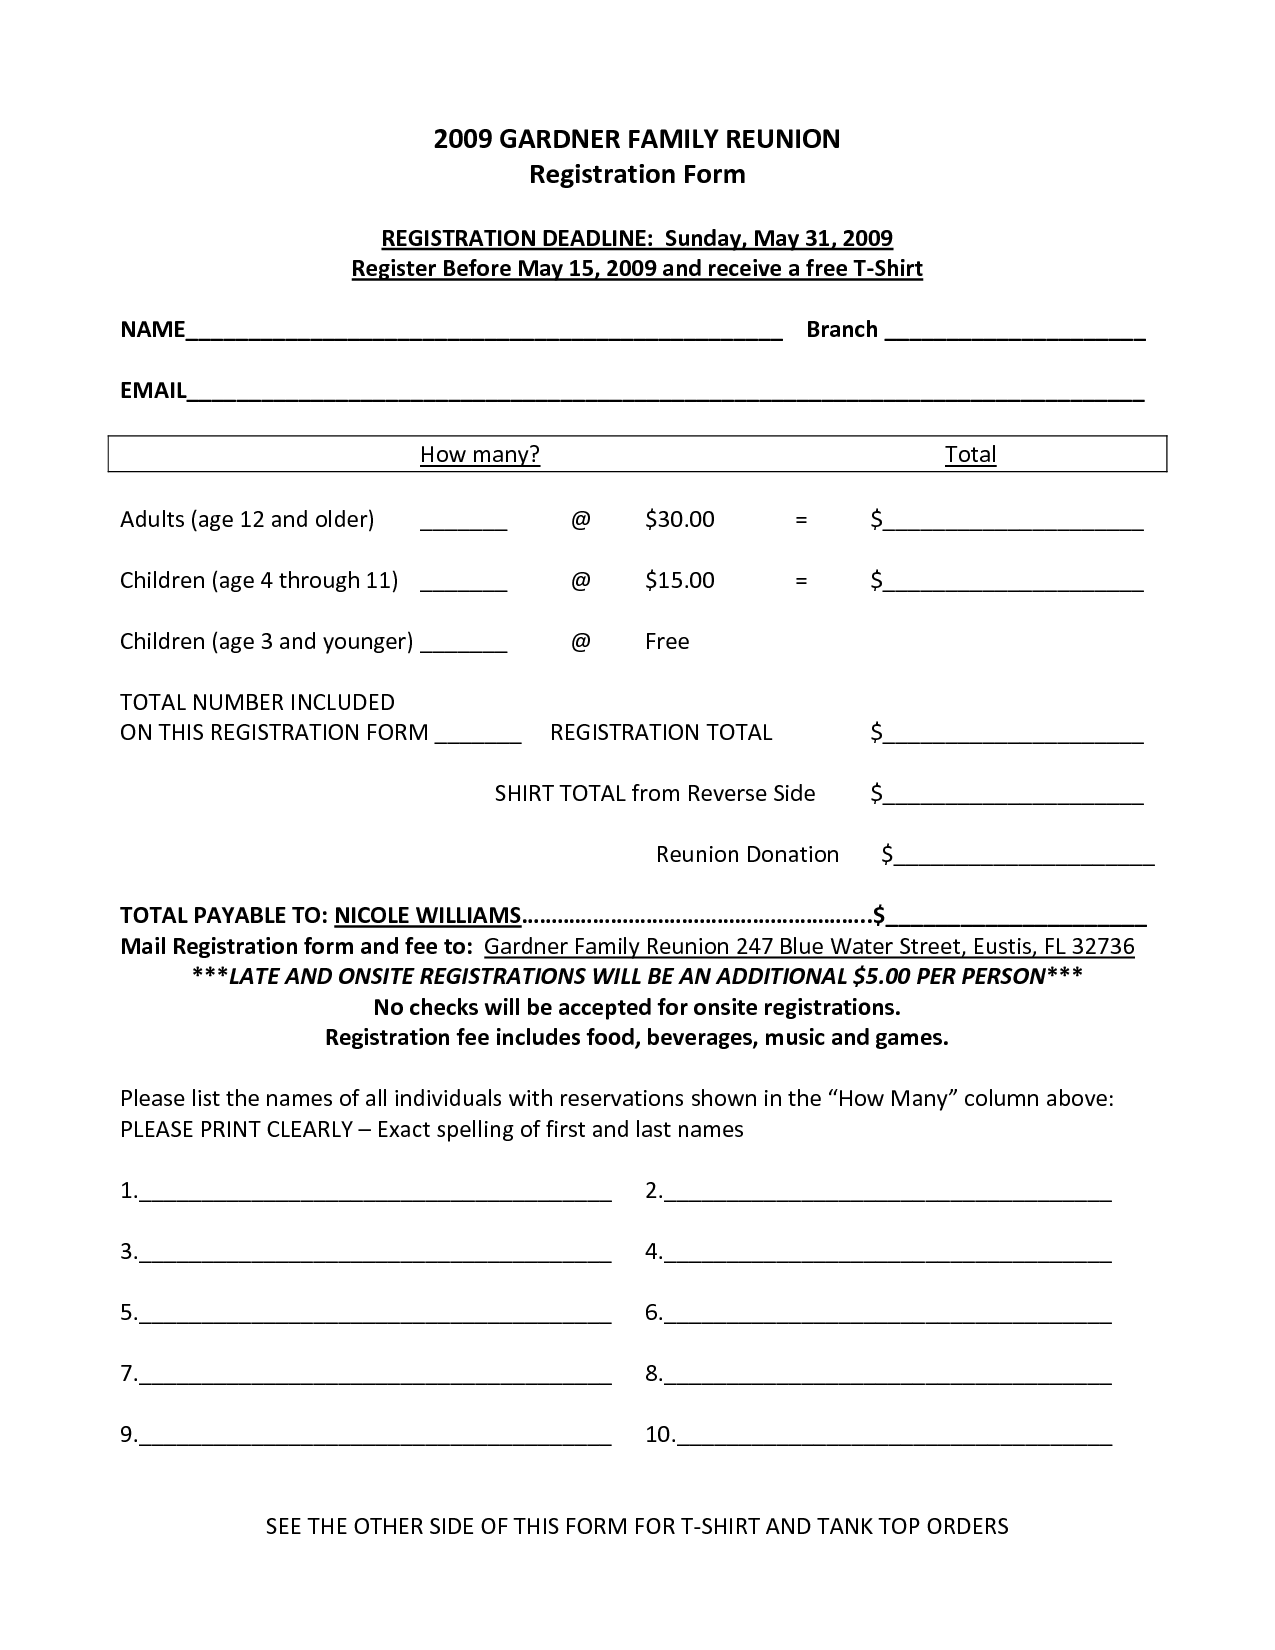 Family Reunion Registration Form Template – Sign Up Form Template Word